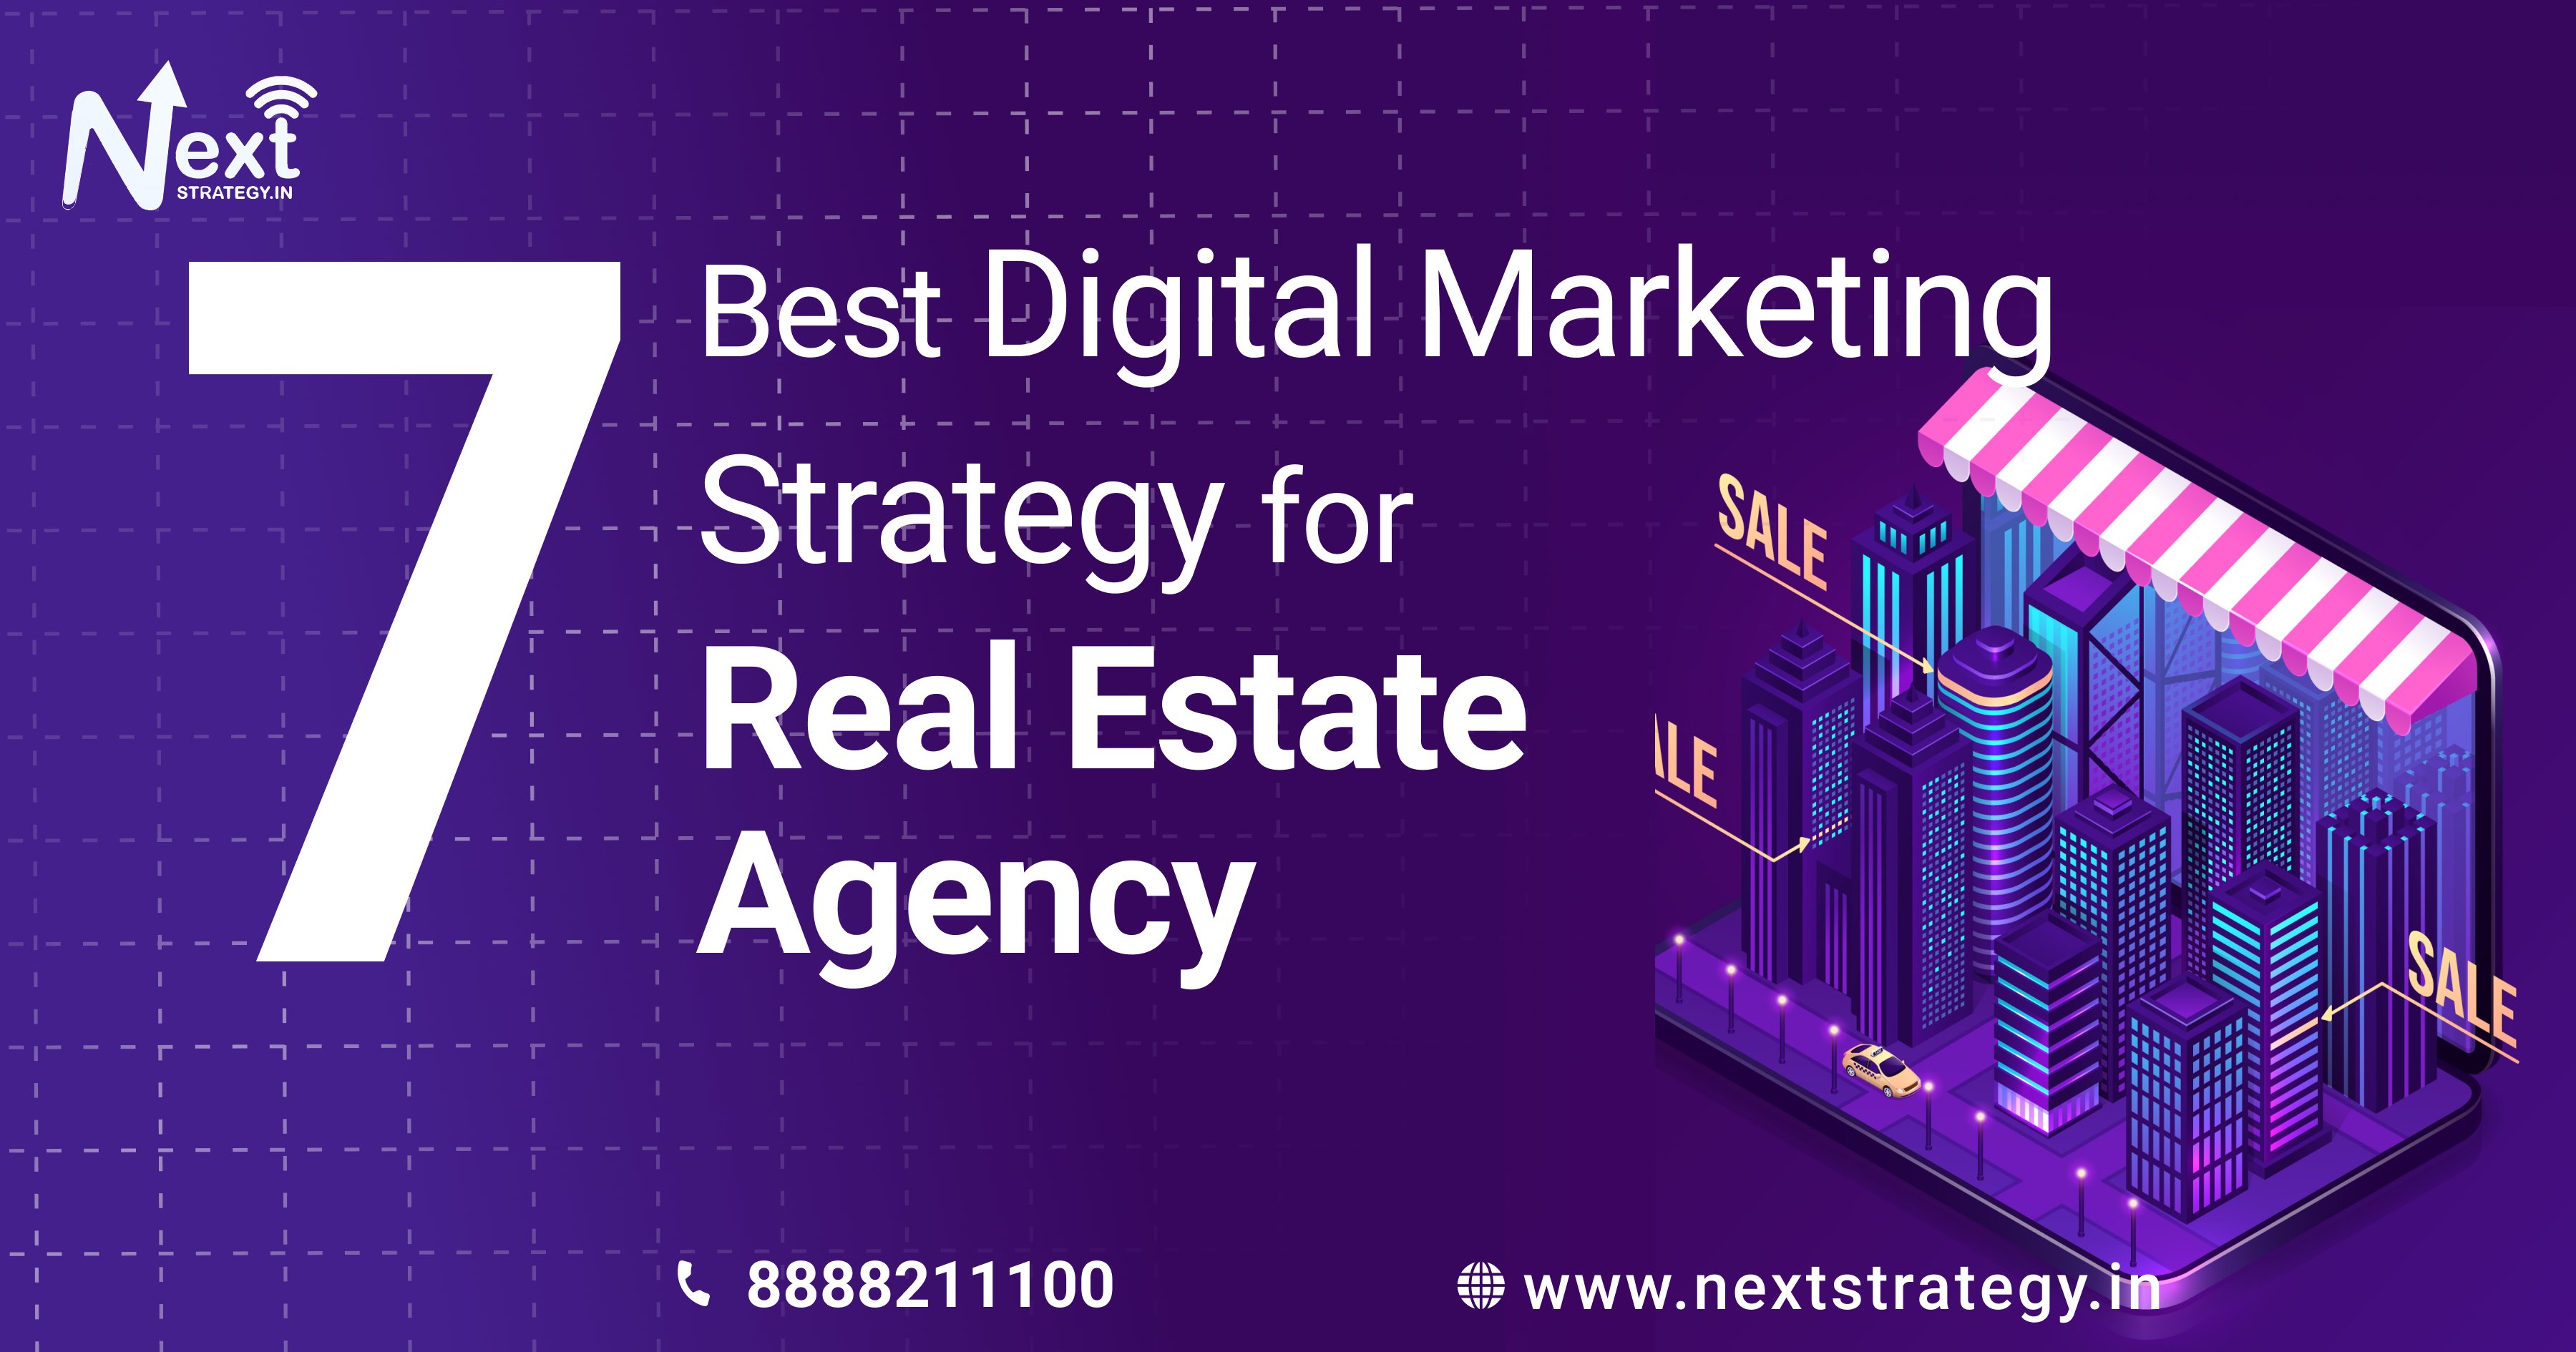 Best Digital Marketing Strategy for Real Estate Agency - Nextstrategy.in - Best Digital Marketing Company in Pune